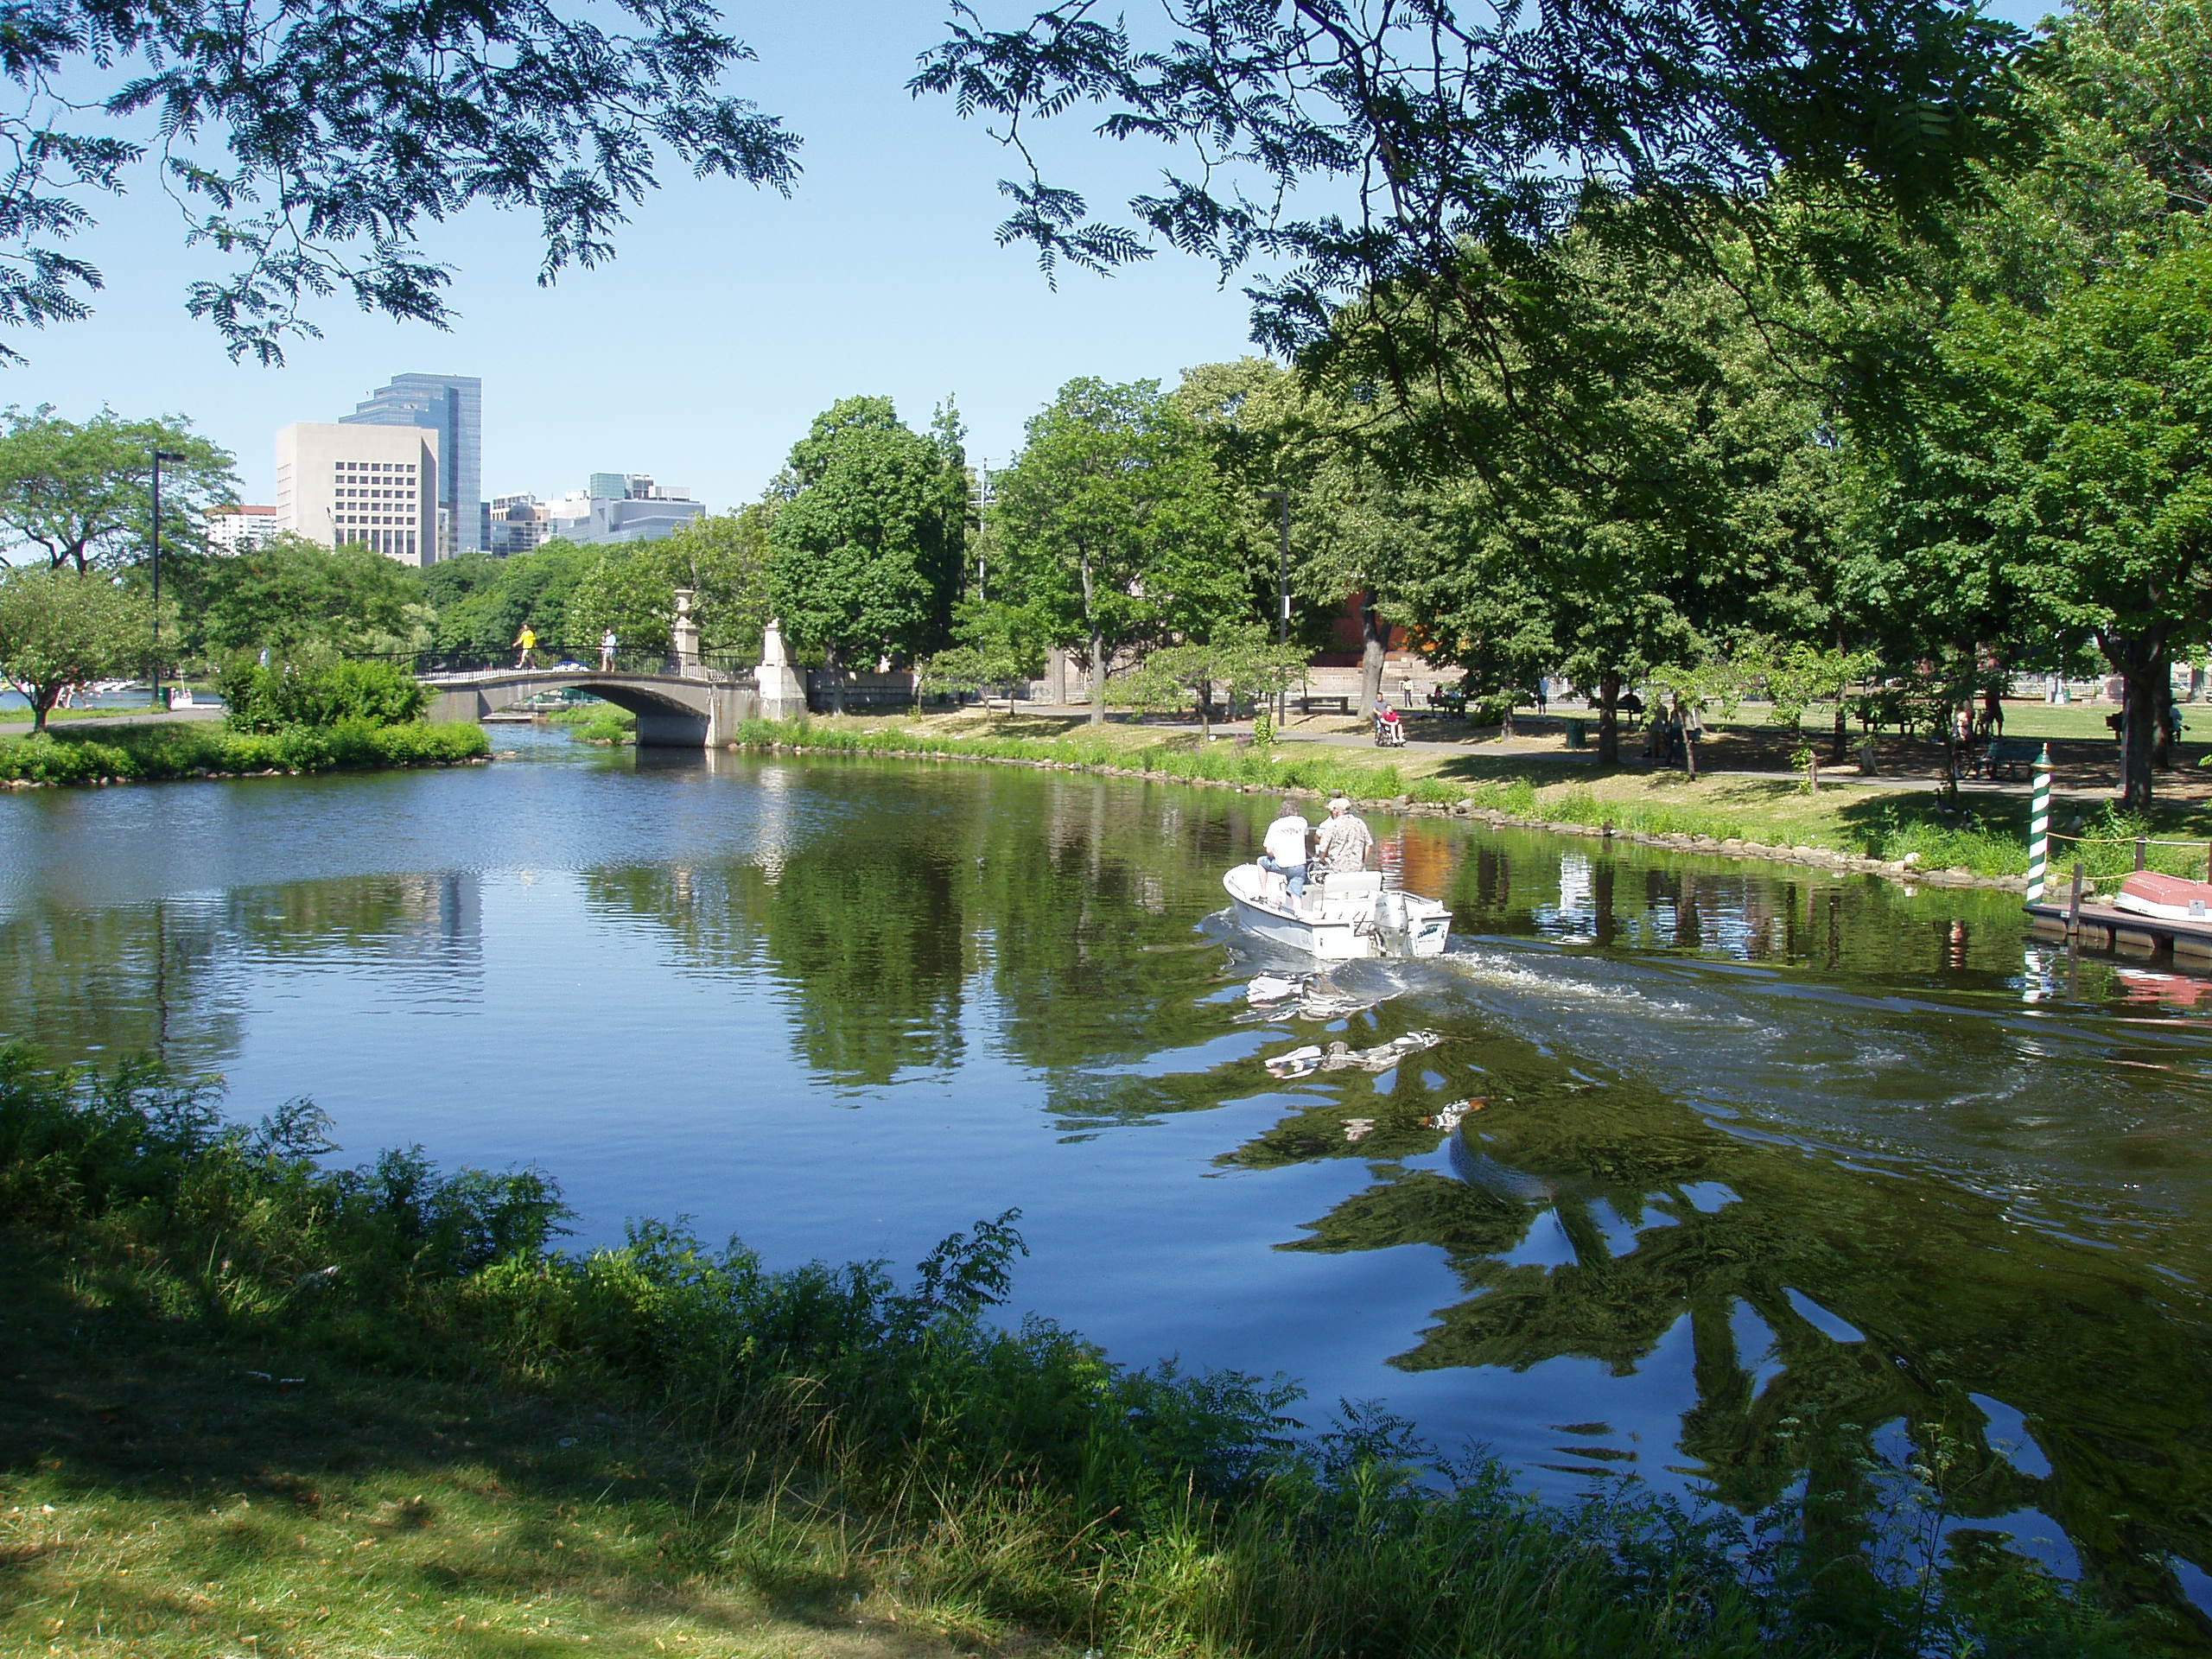 Charles River Esplanade, part of the Emerald Necklace in Boston.